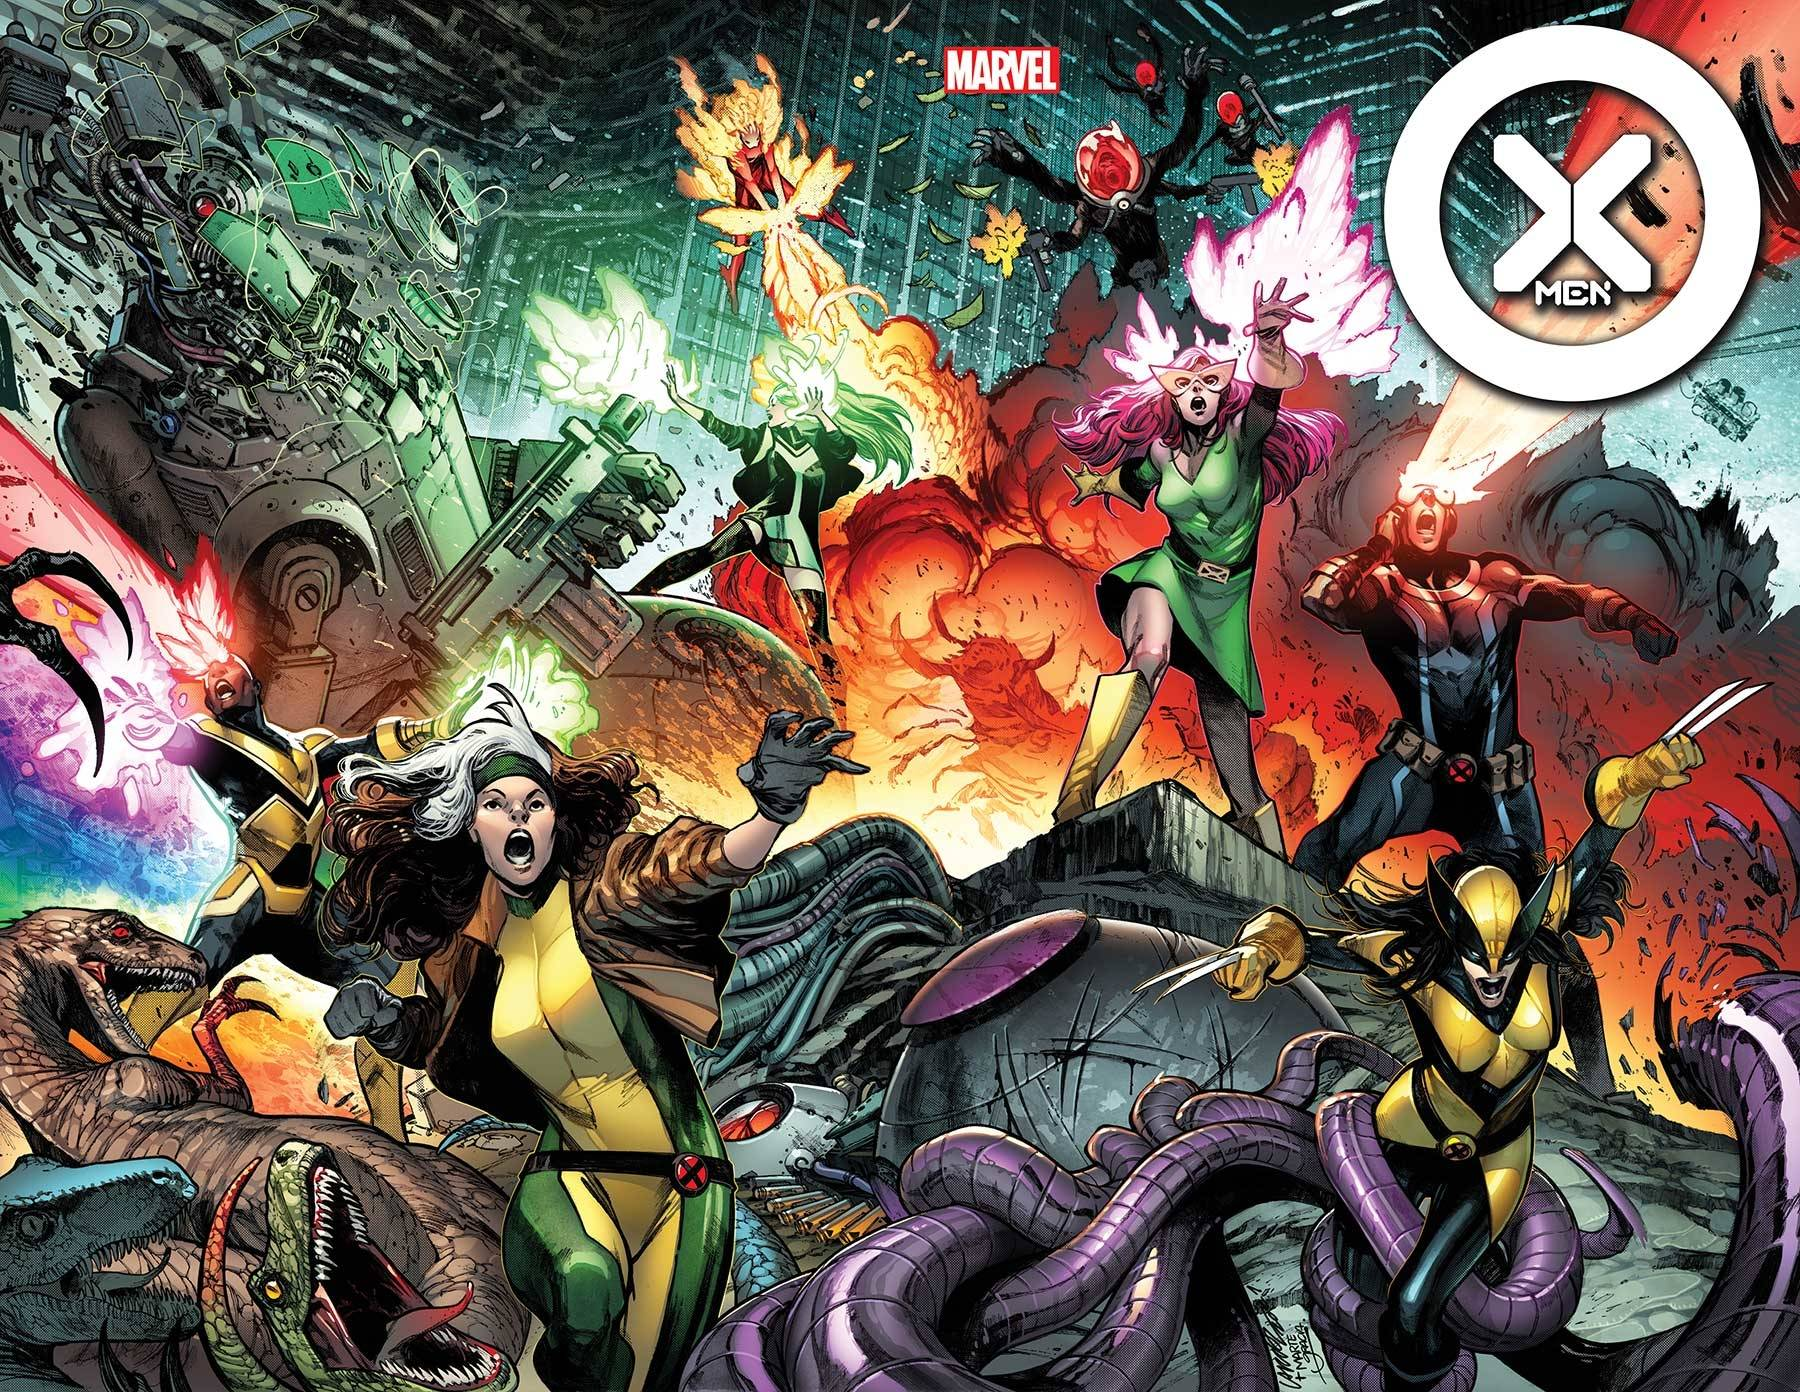 In 'X-Men' #1, a new era begins with shadows of the past